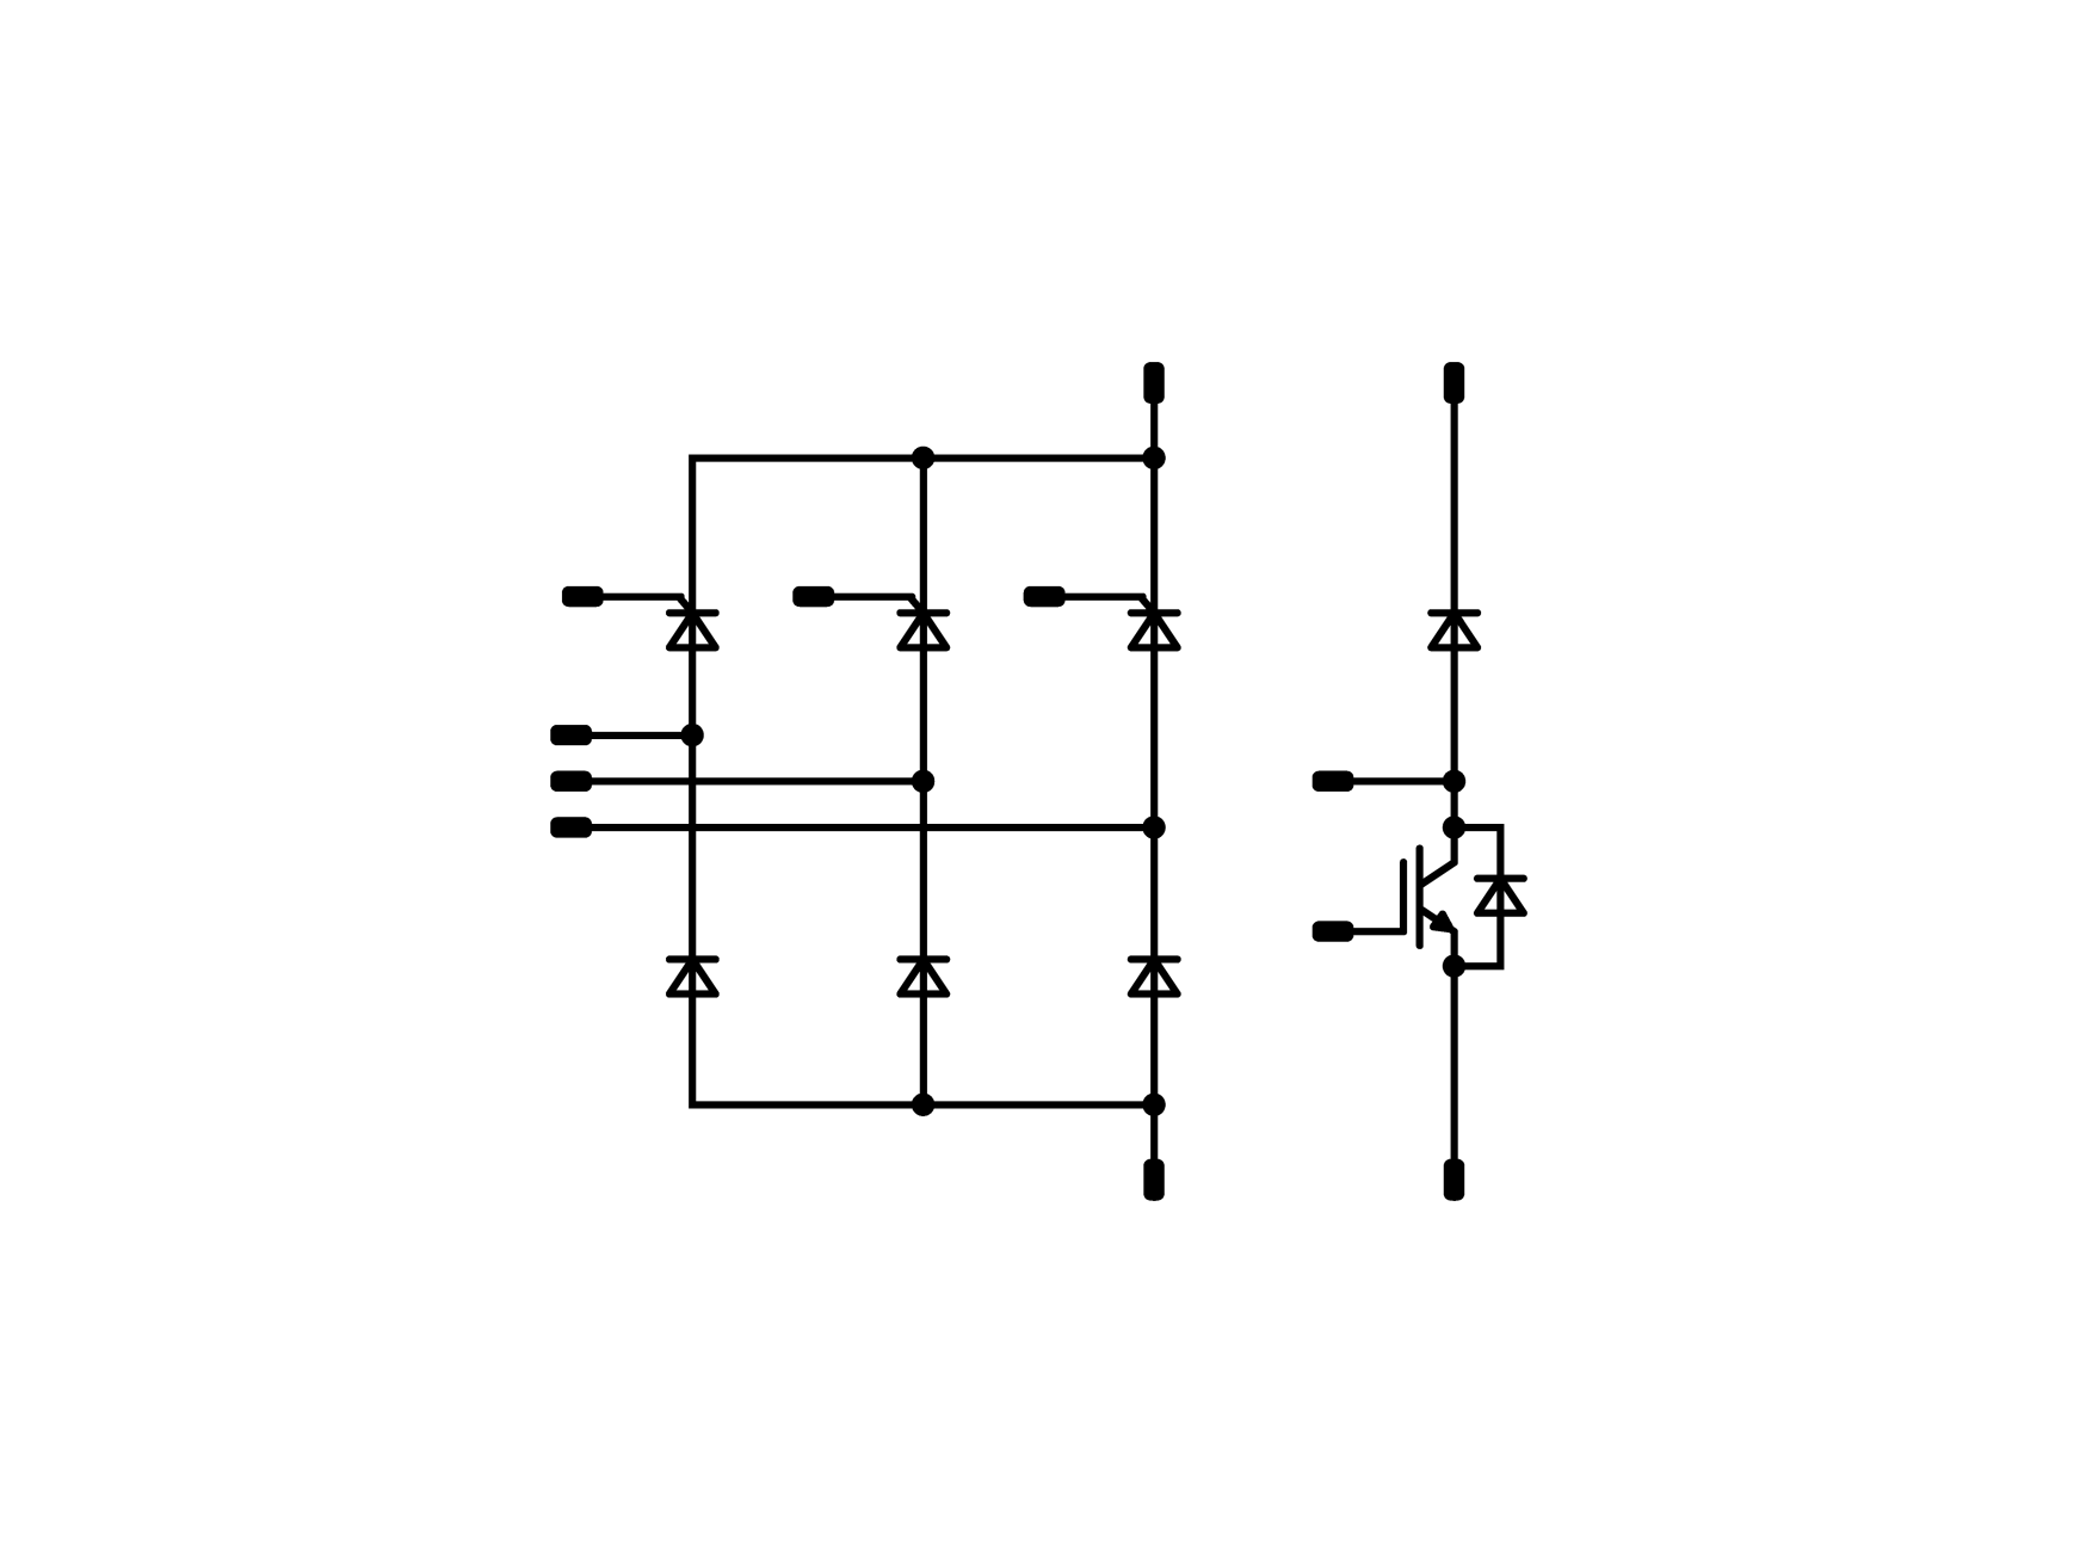 Rectifier Vincotech Halfwave Topology The Circuit Is A